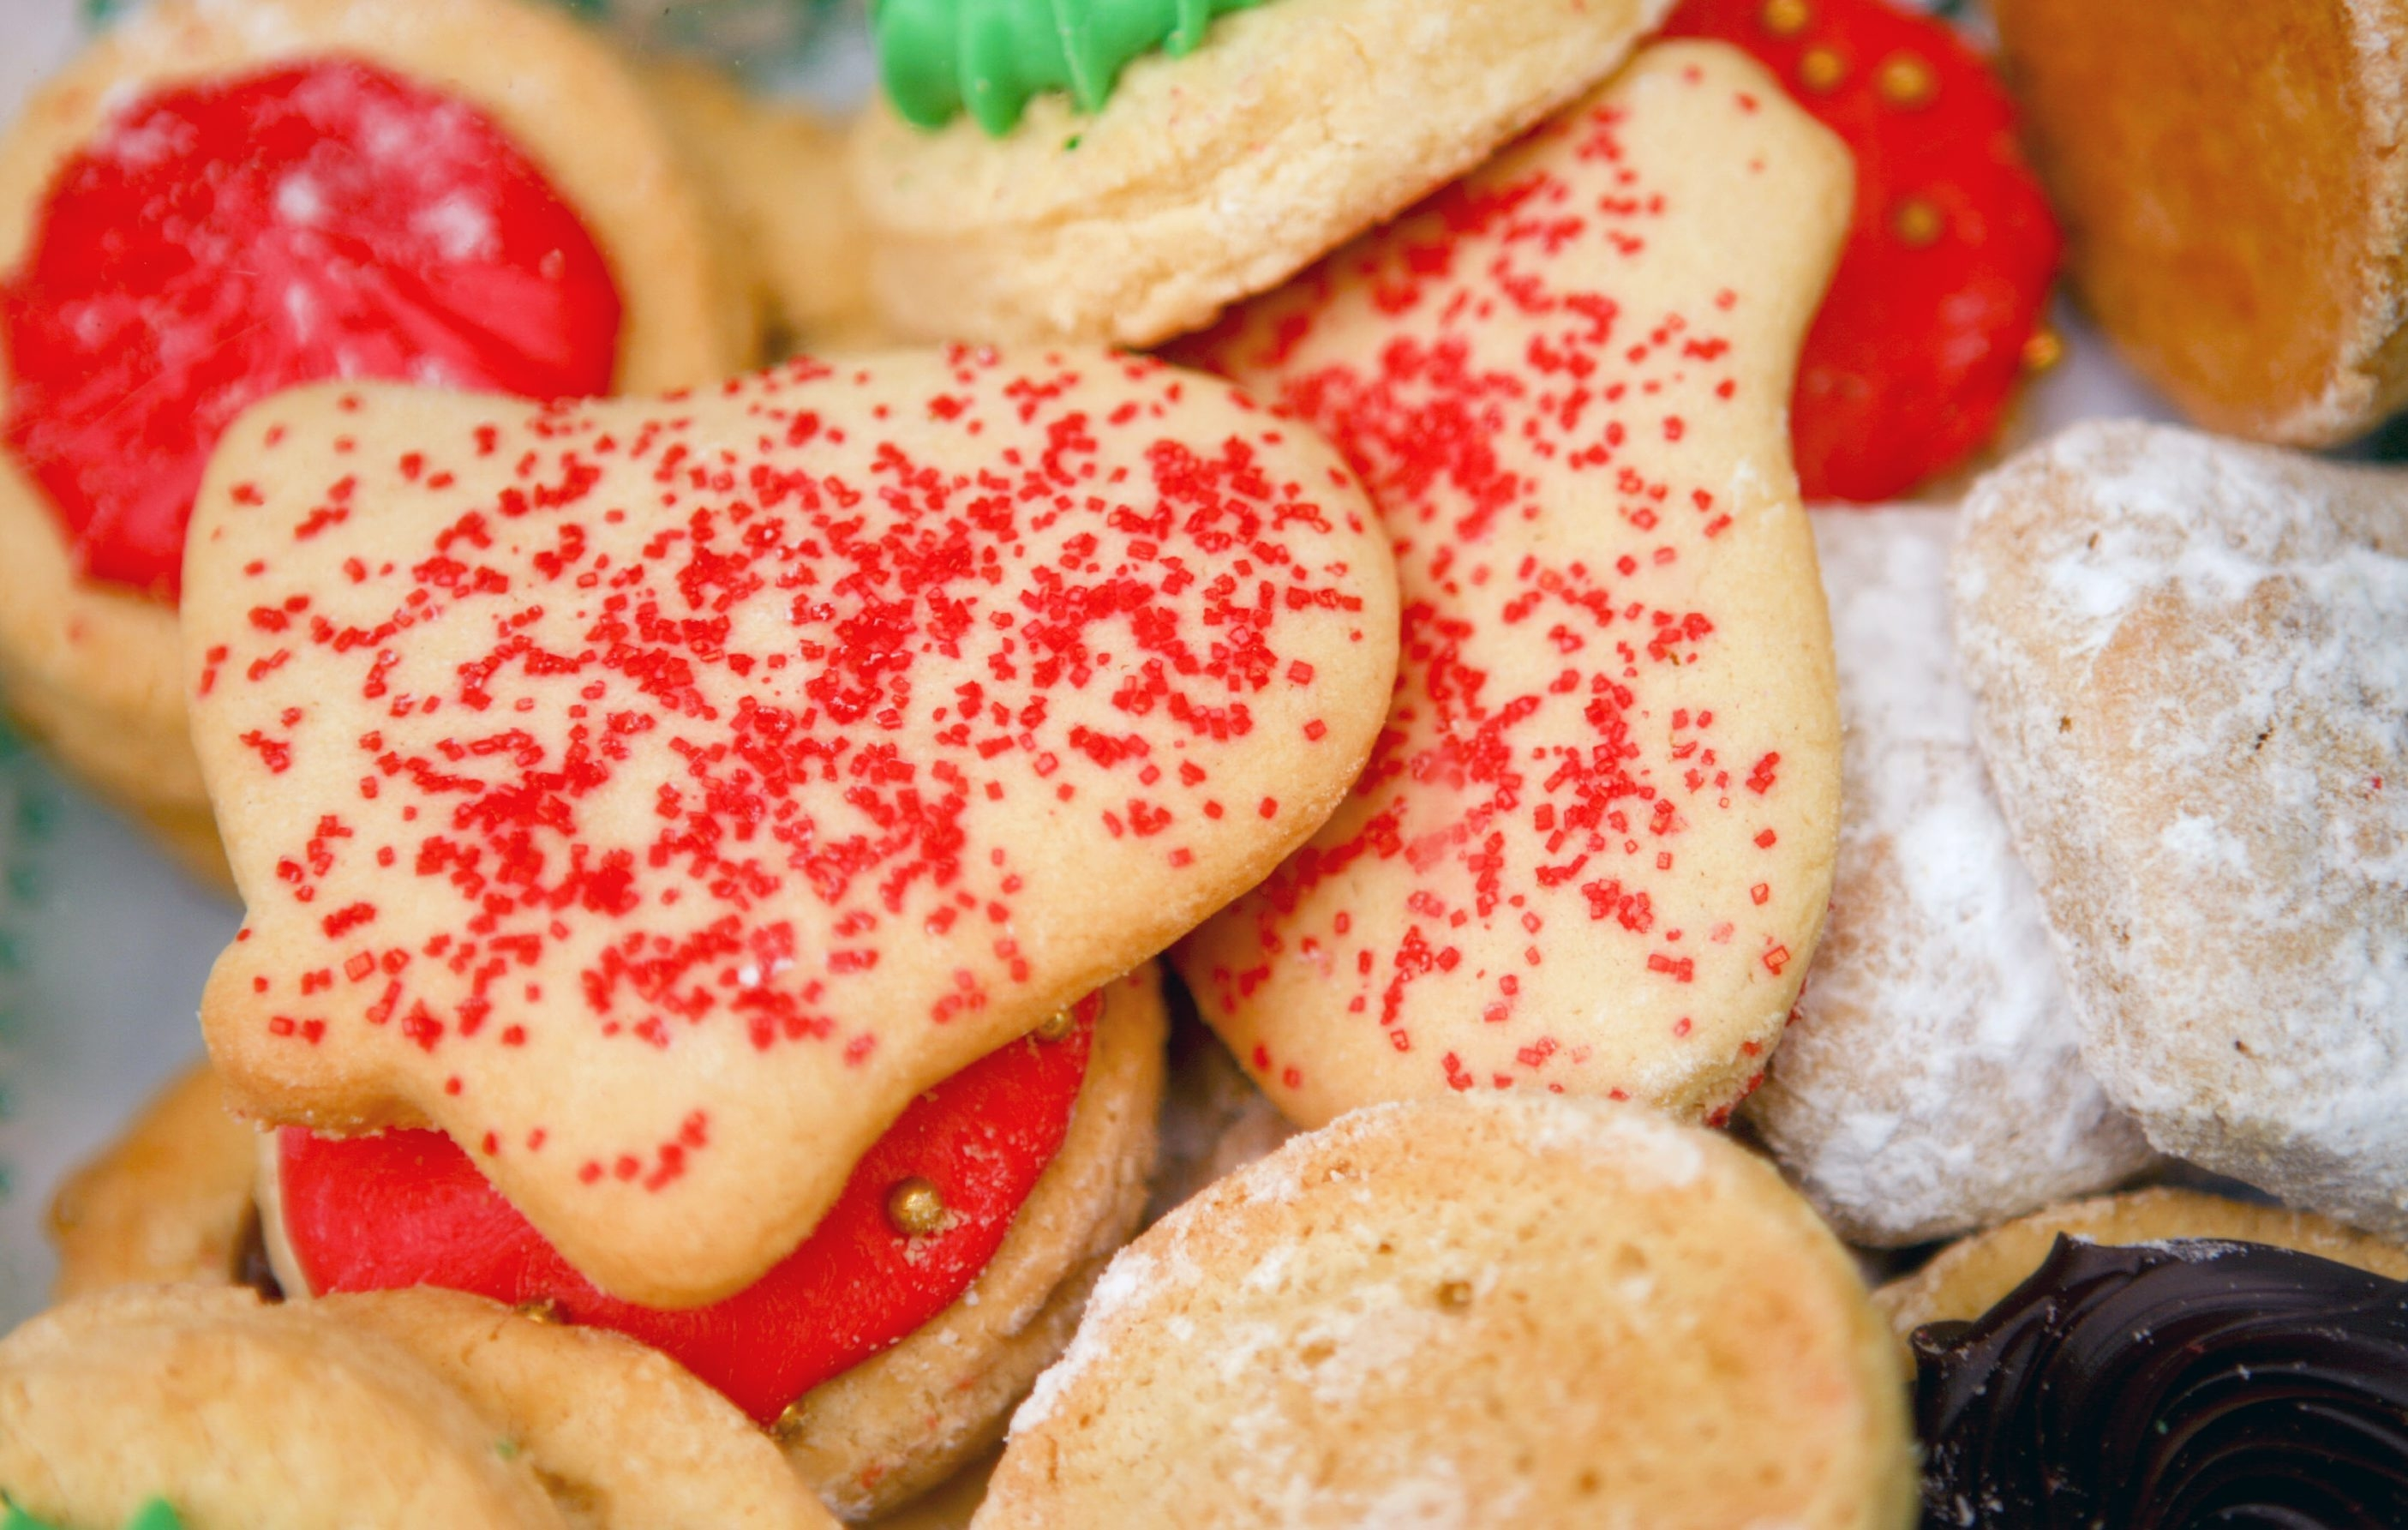 Eating too much sugar, high-carb, high-fat food can decrease energy, mood.